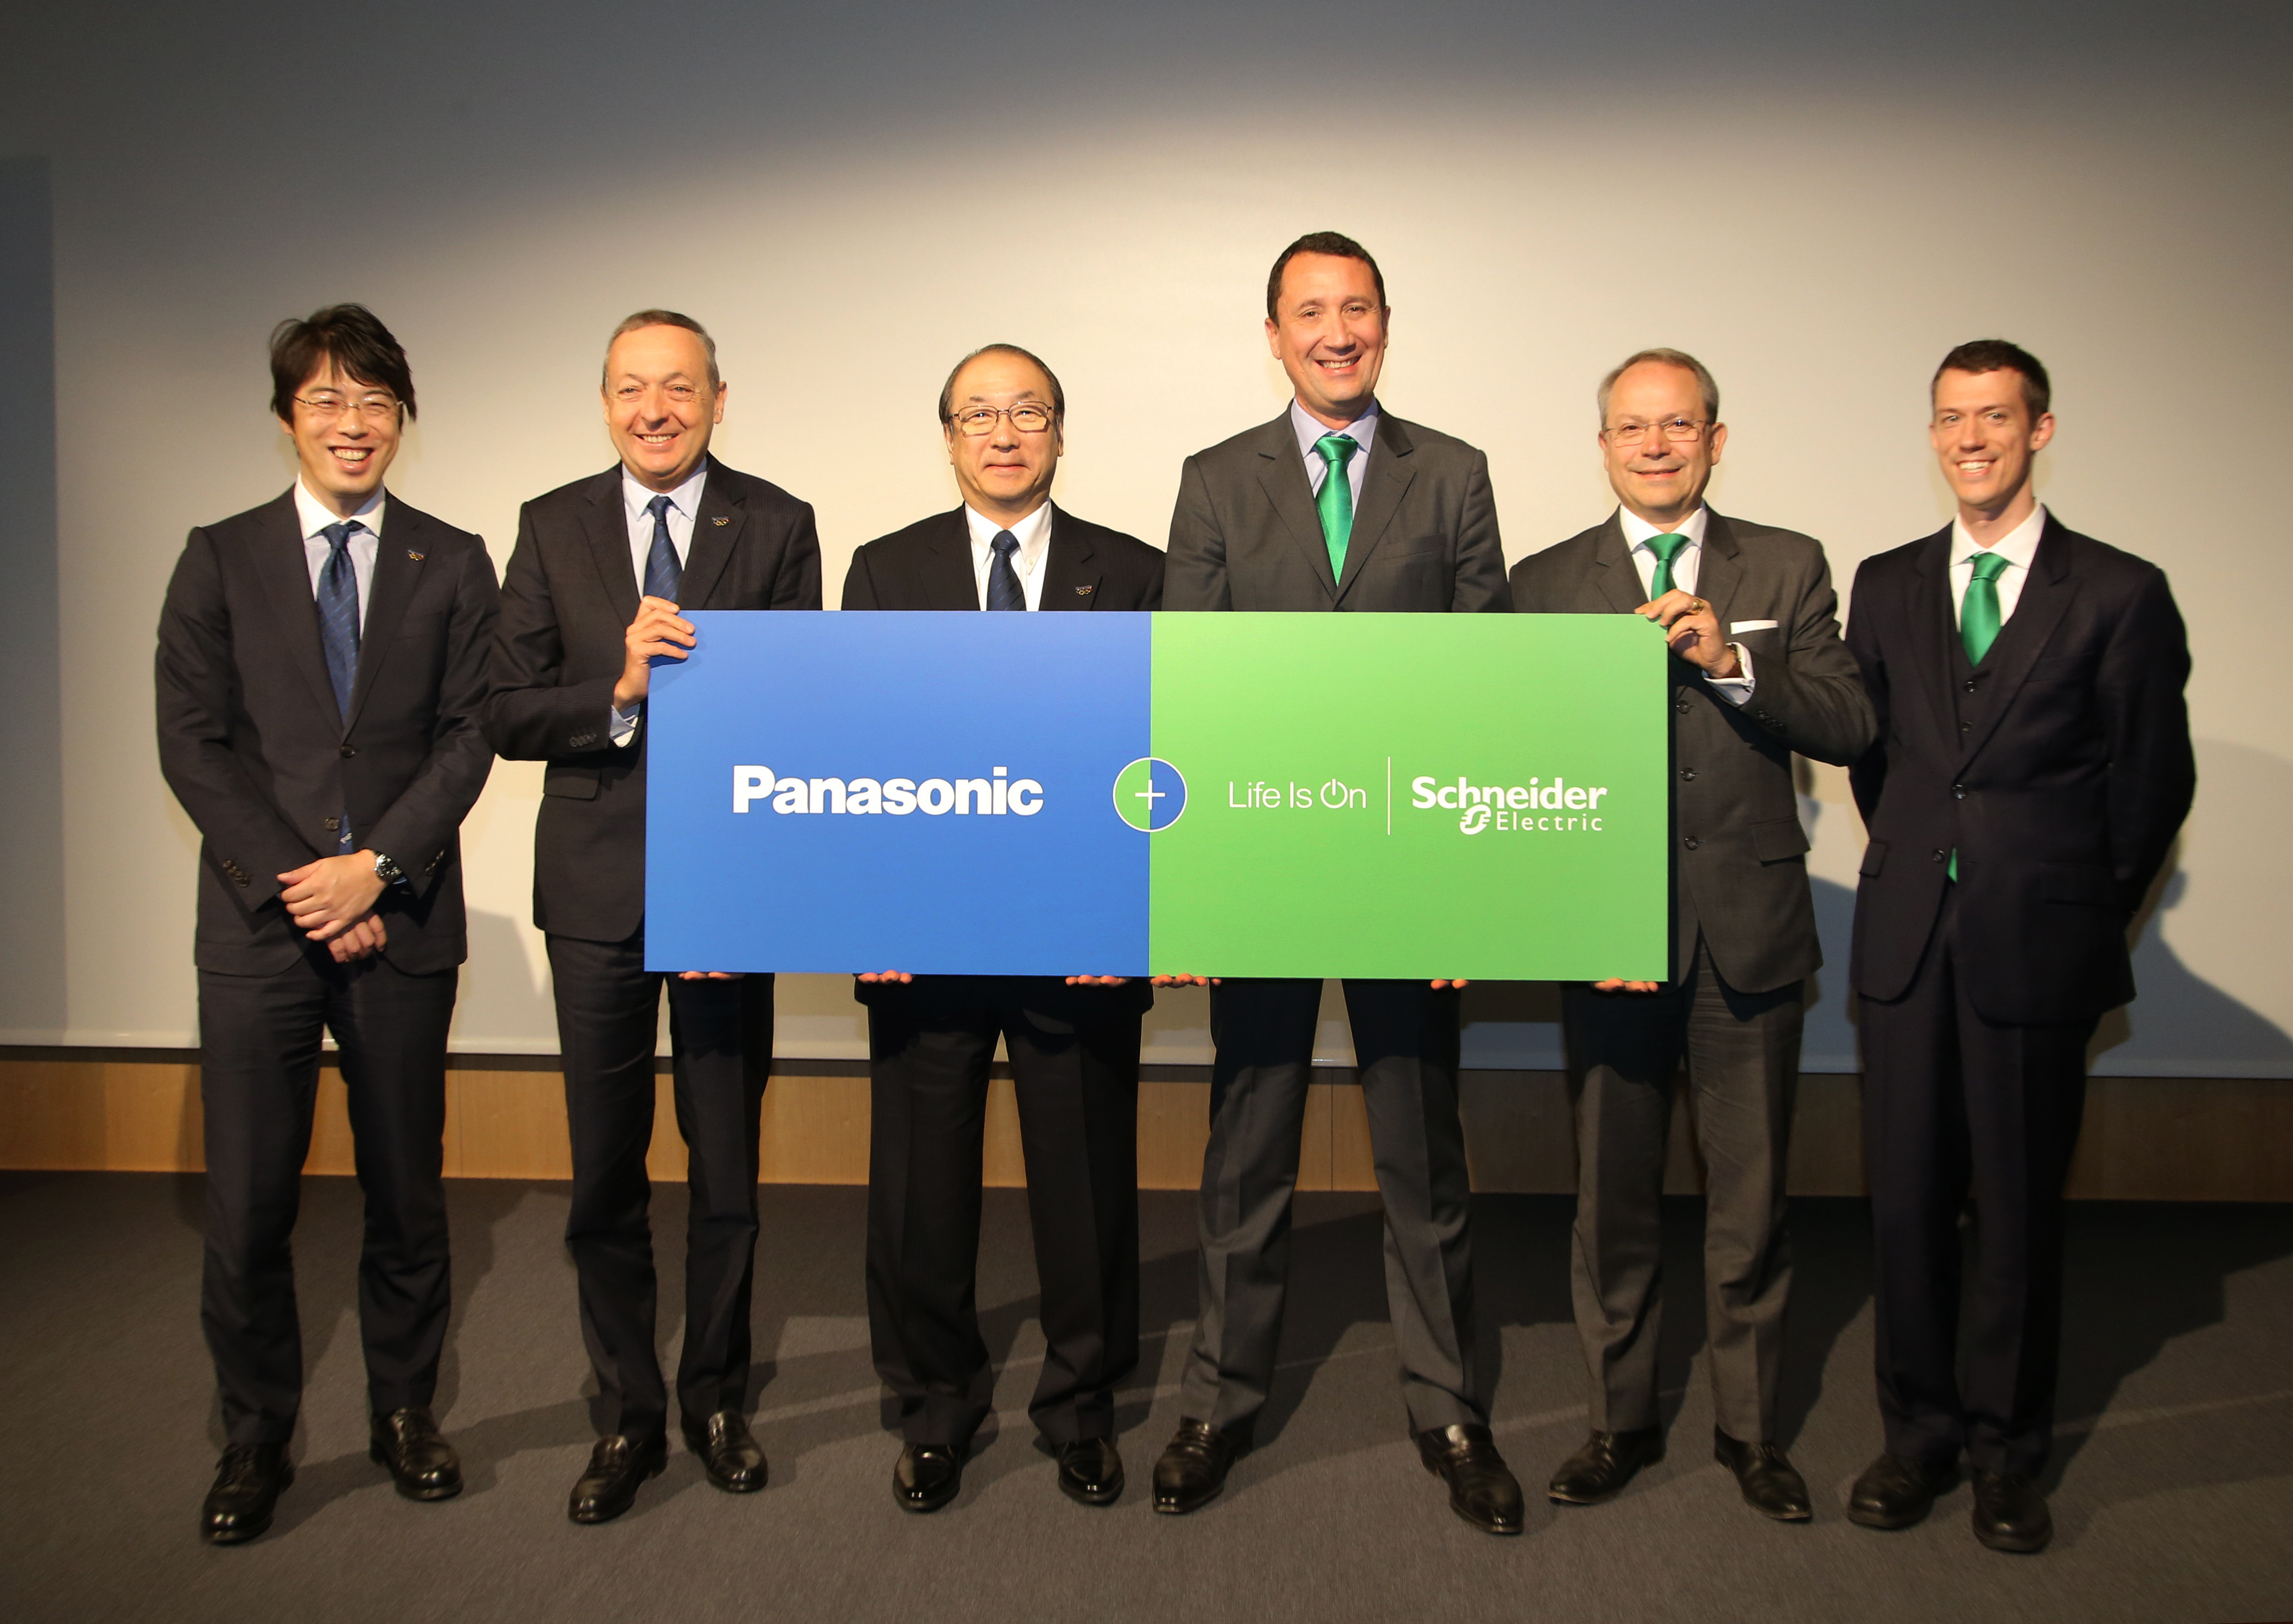 Panasonic And Schneider Electric Partner To Simplify